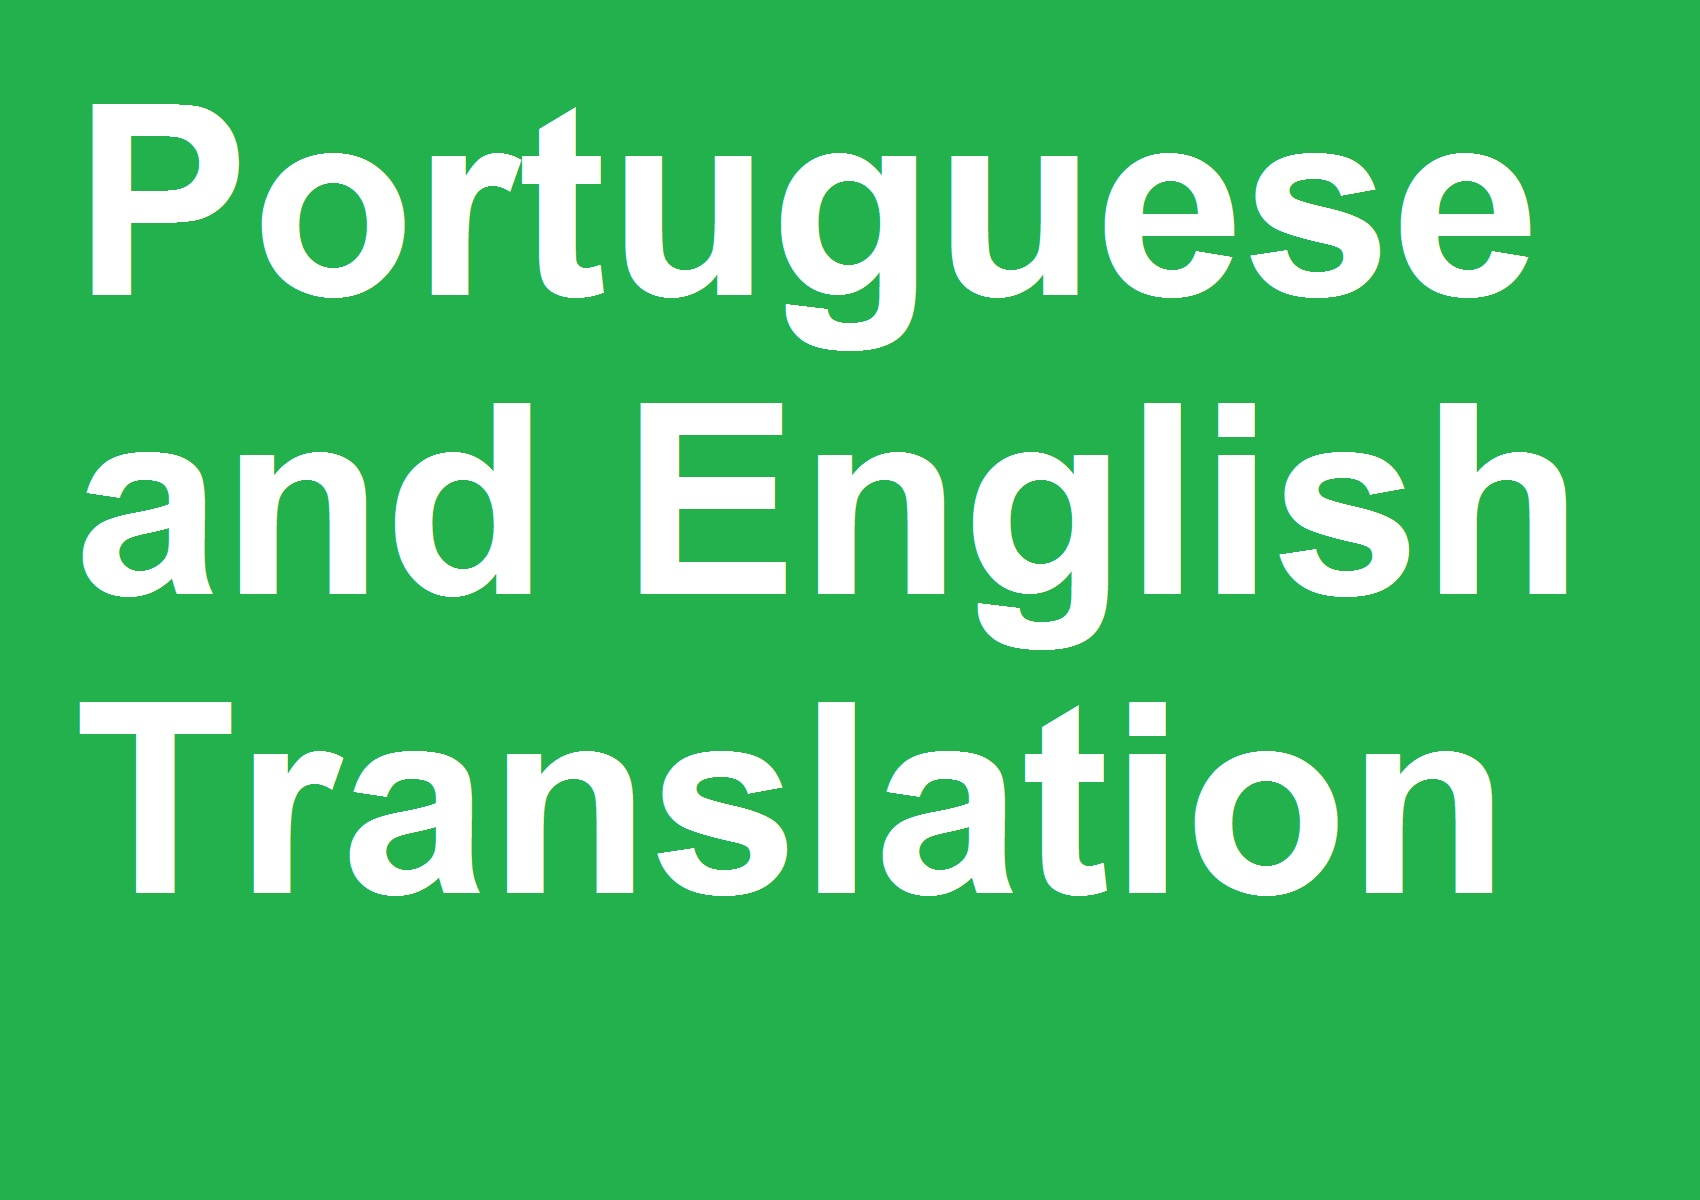 translate 800 words from Portuguese into English or vice